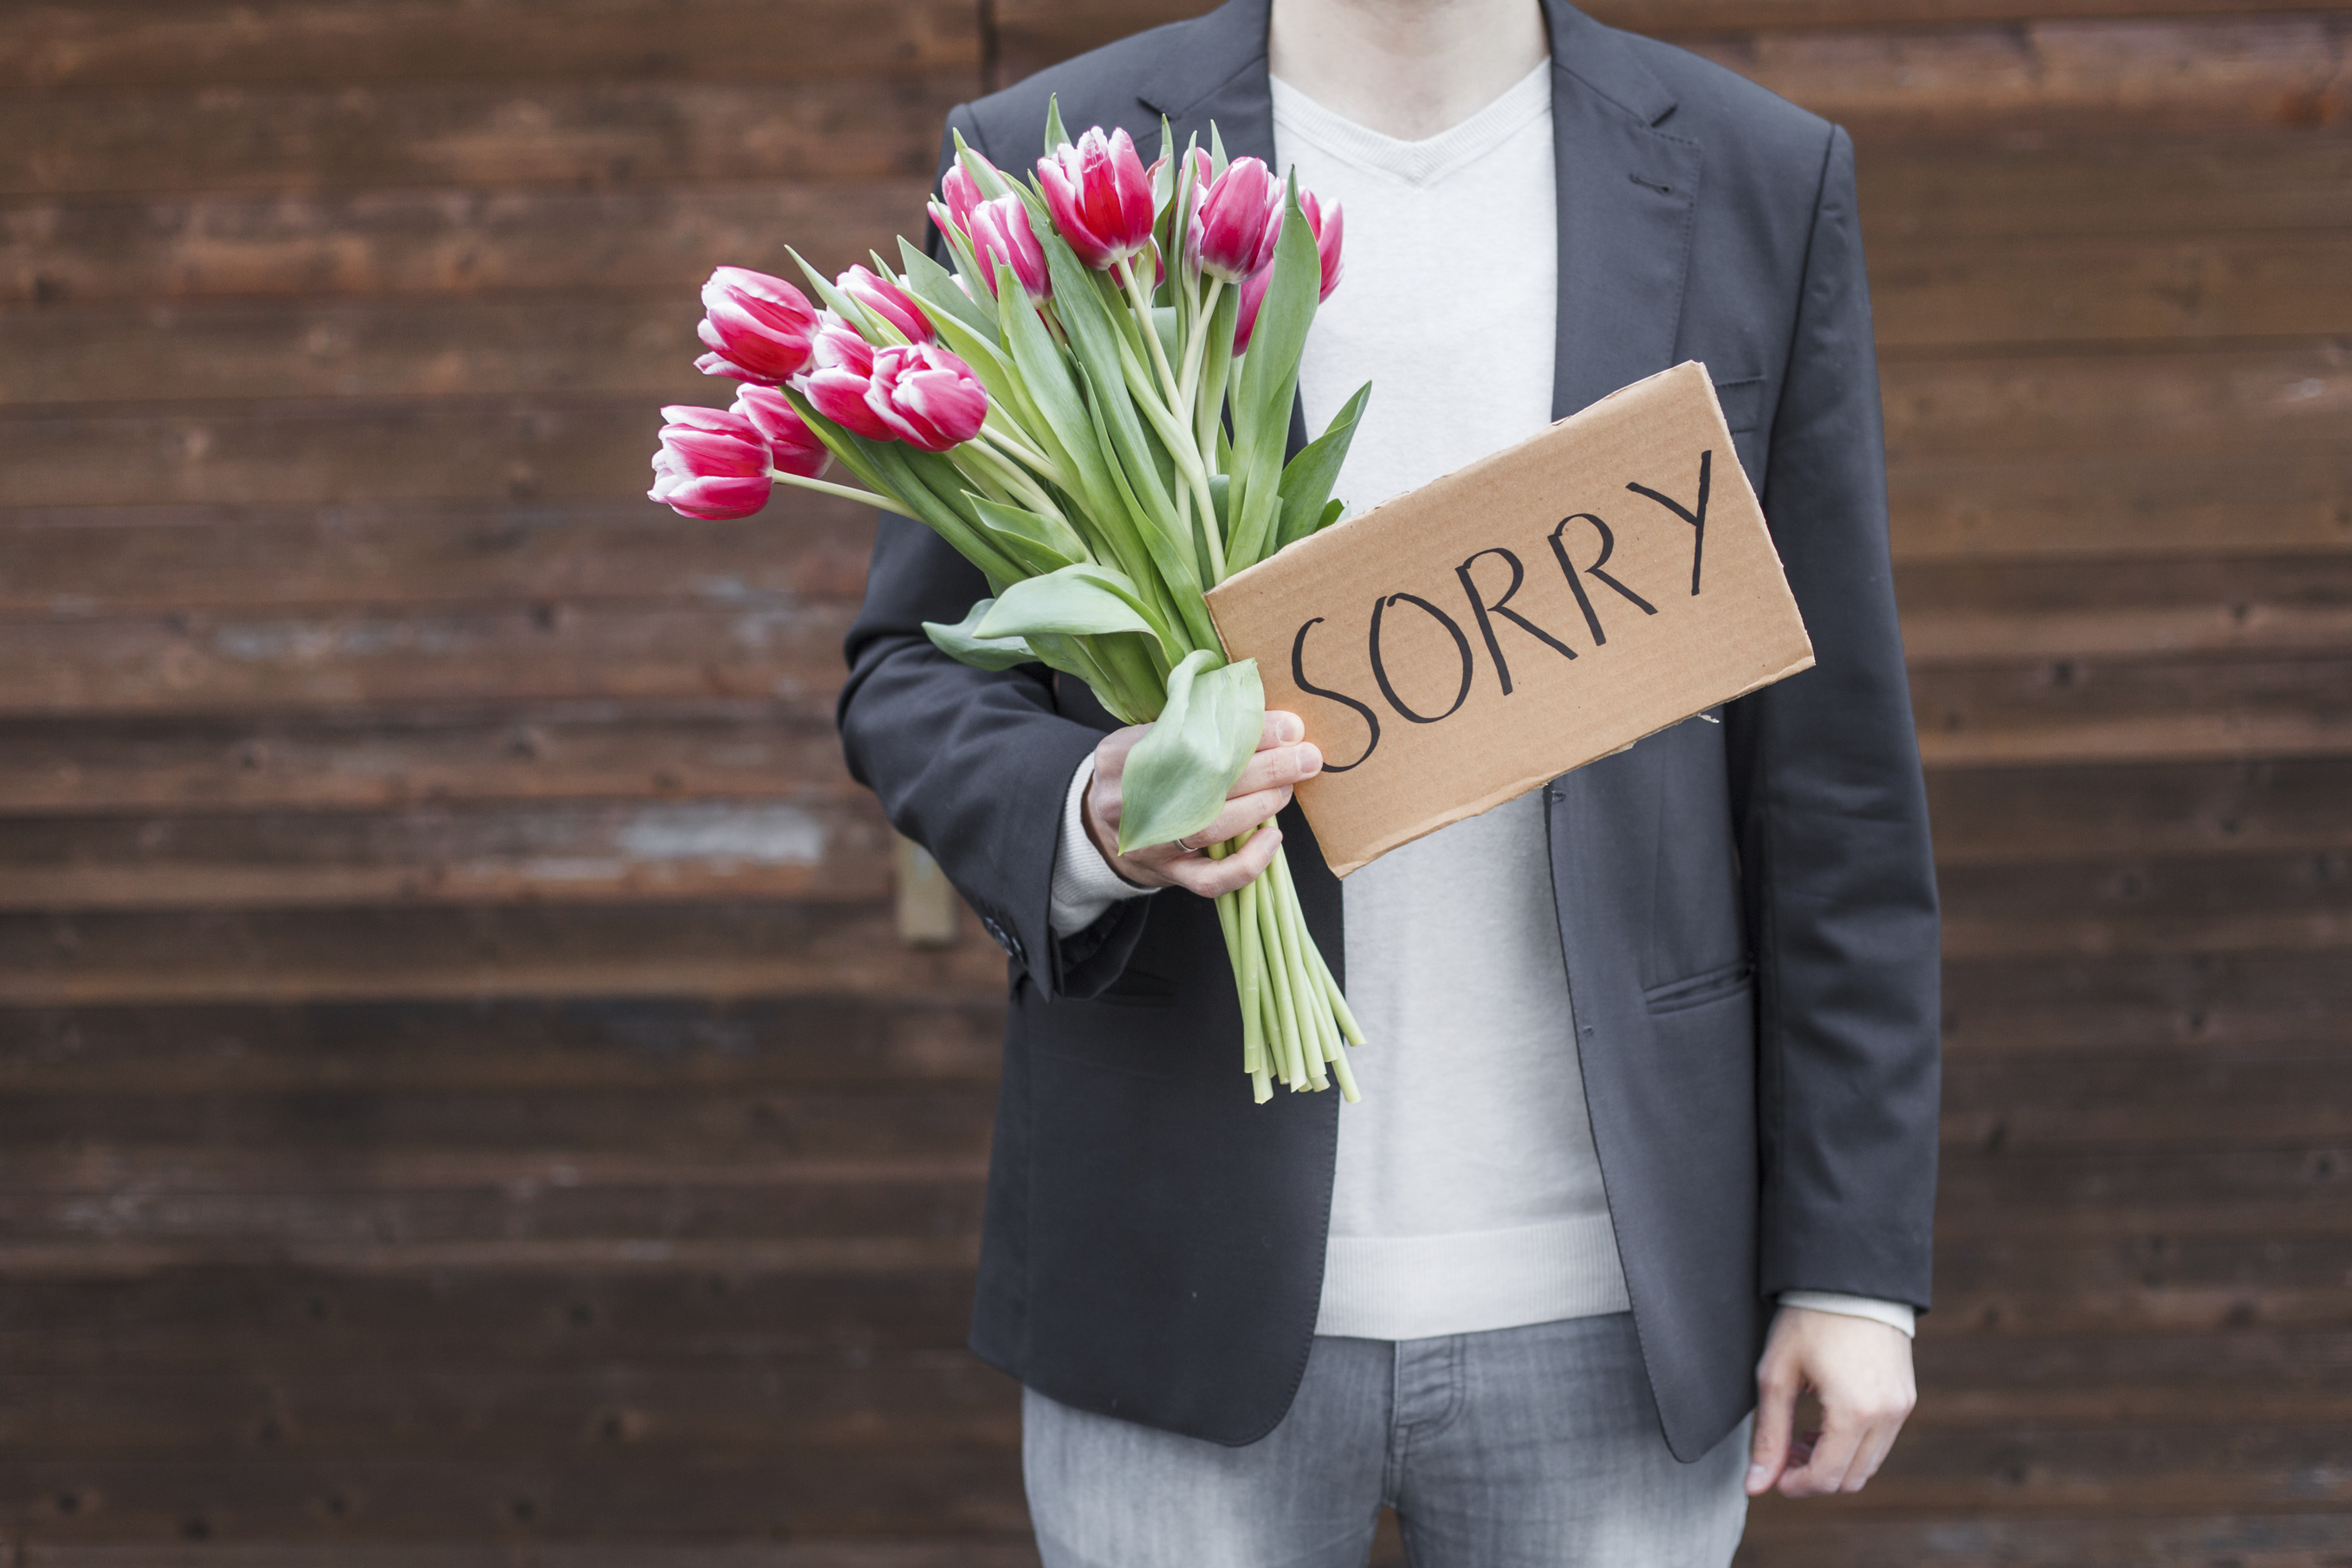 Man apologizing with flowers